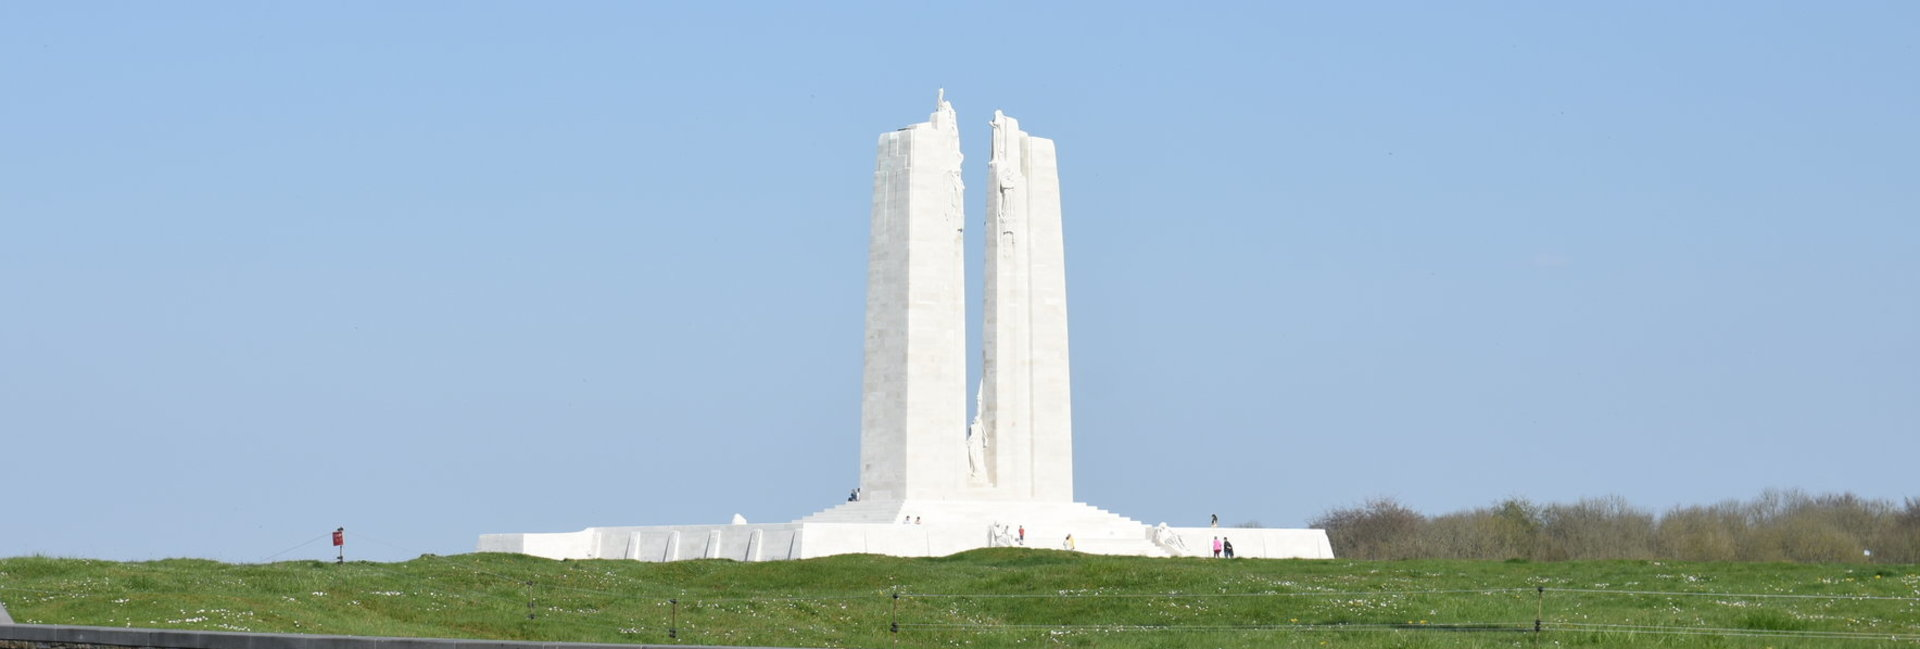 Ville de Vimy - Site officiel